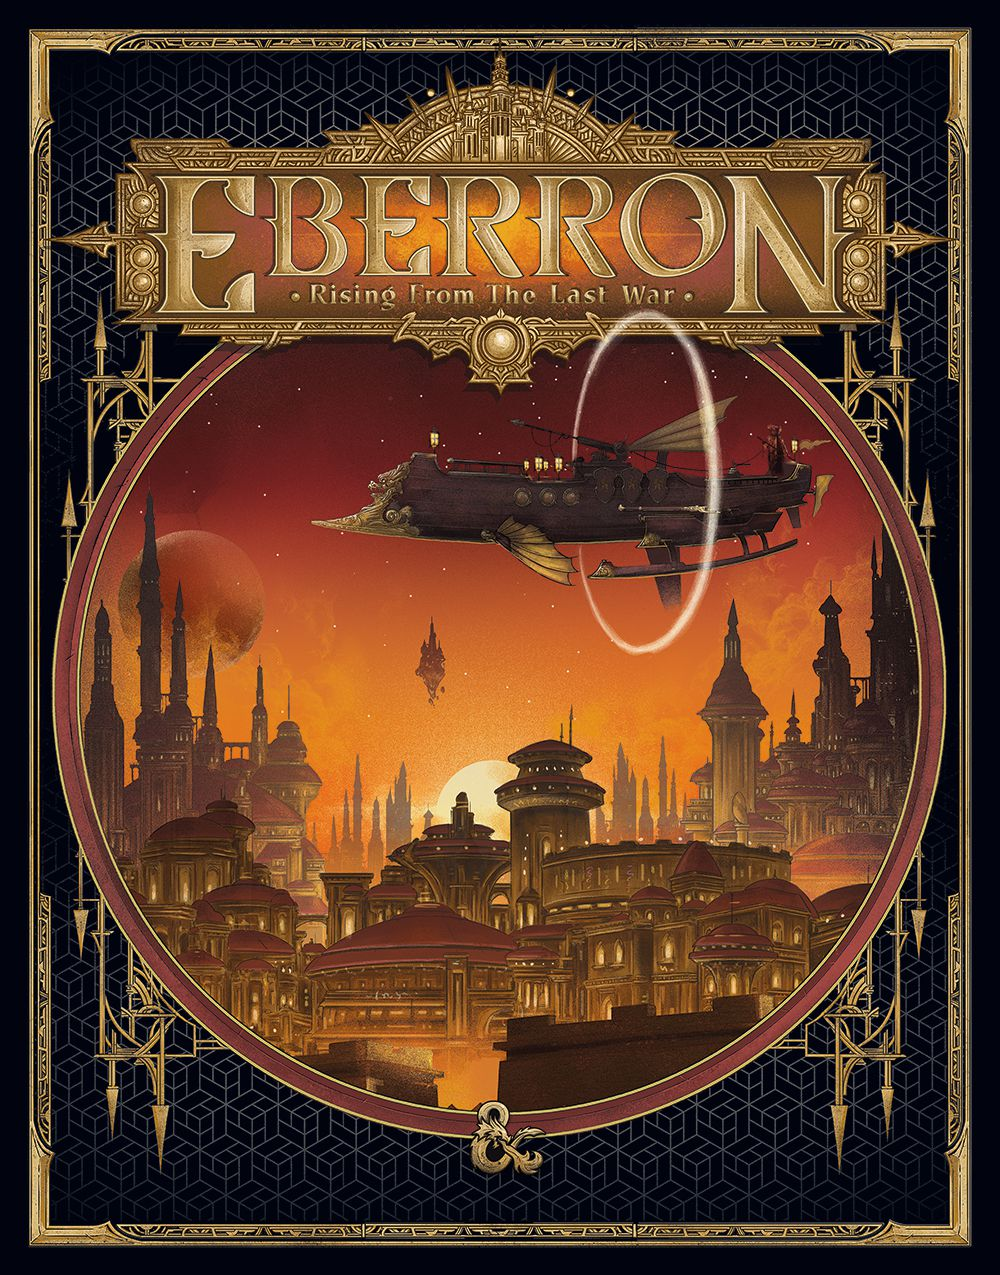 An alternate cover for Eberron shows an airship sailing of an exotic, gilded city at sunset.